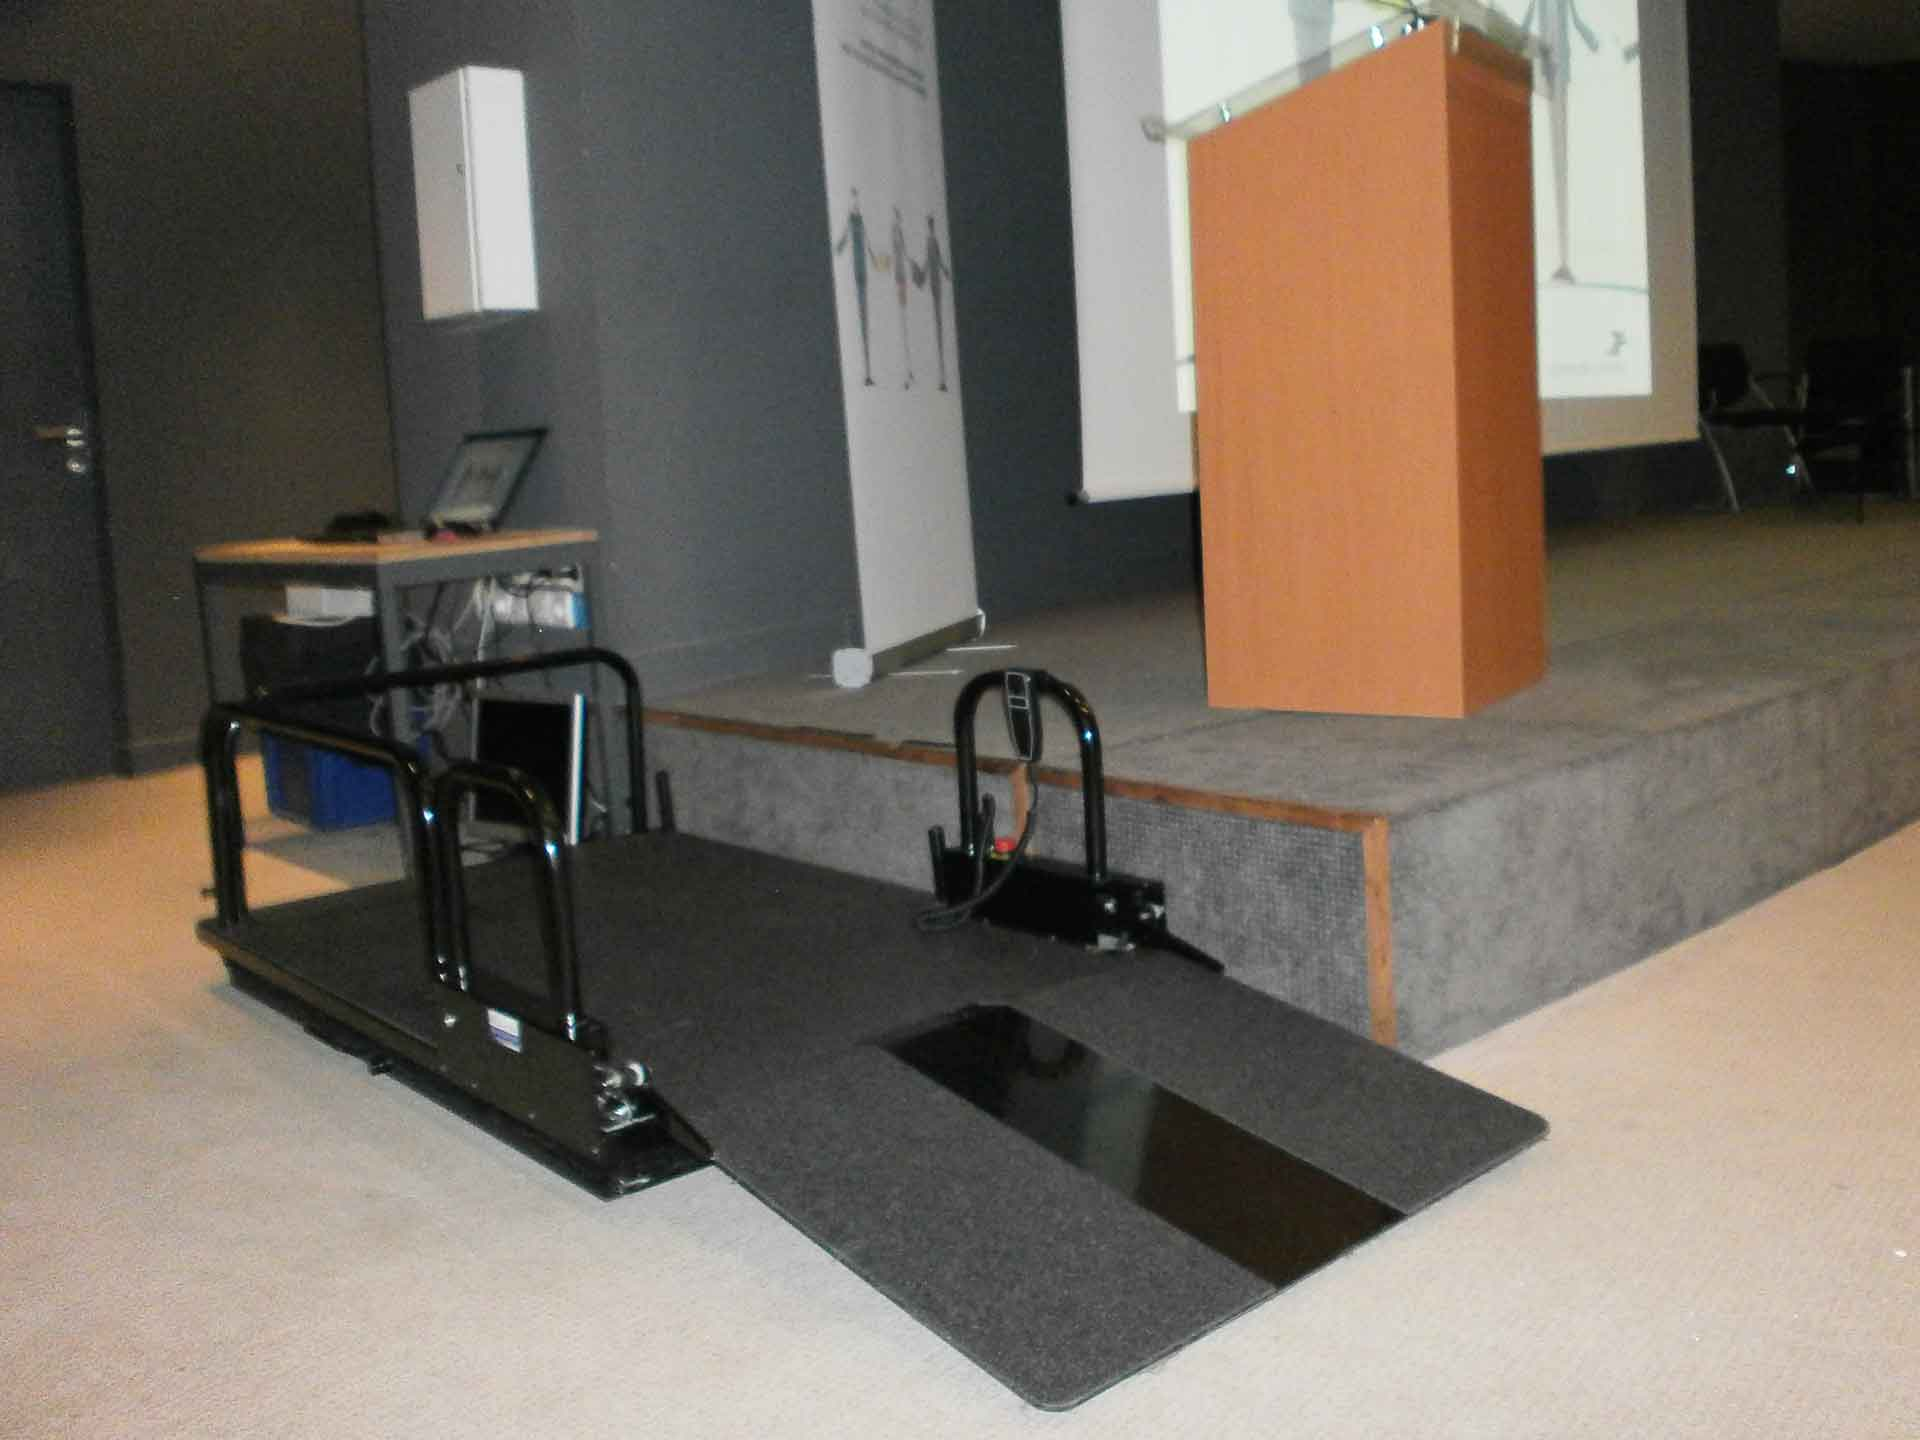 Hire electric elevator platforms for the disabled and the handicapped, ideal for events, trade shows, seminars, shows.